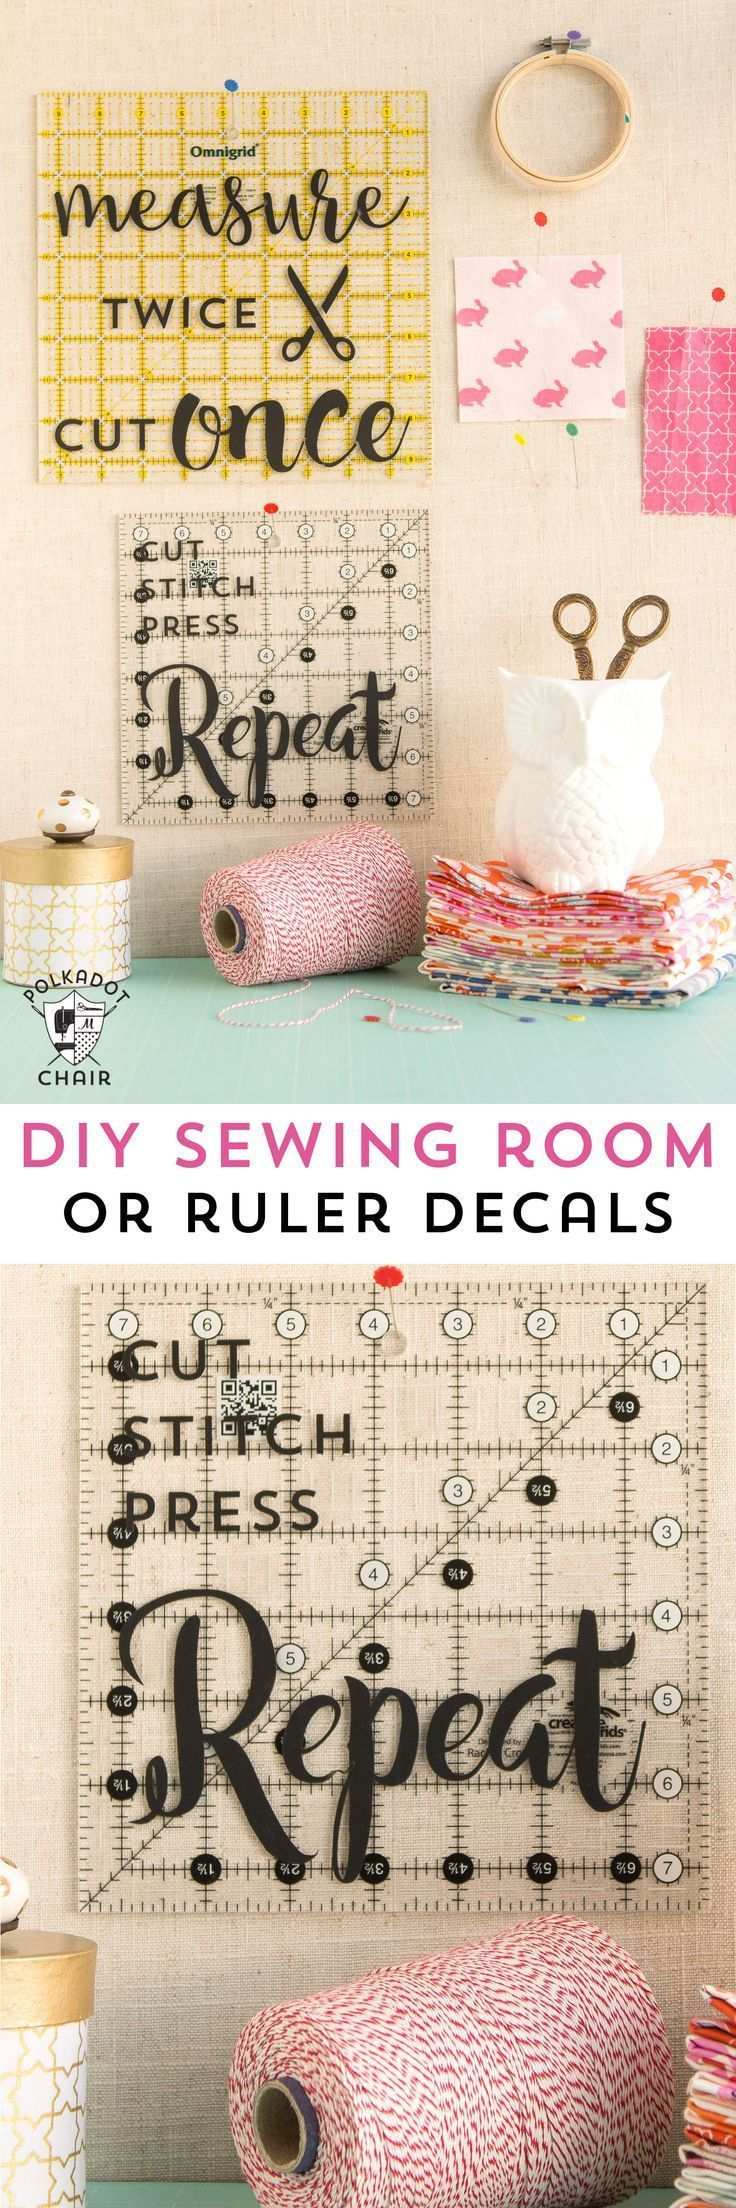 Best 25 Quilting Room Ideas On Pinterest Sewing Rooms